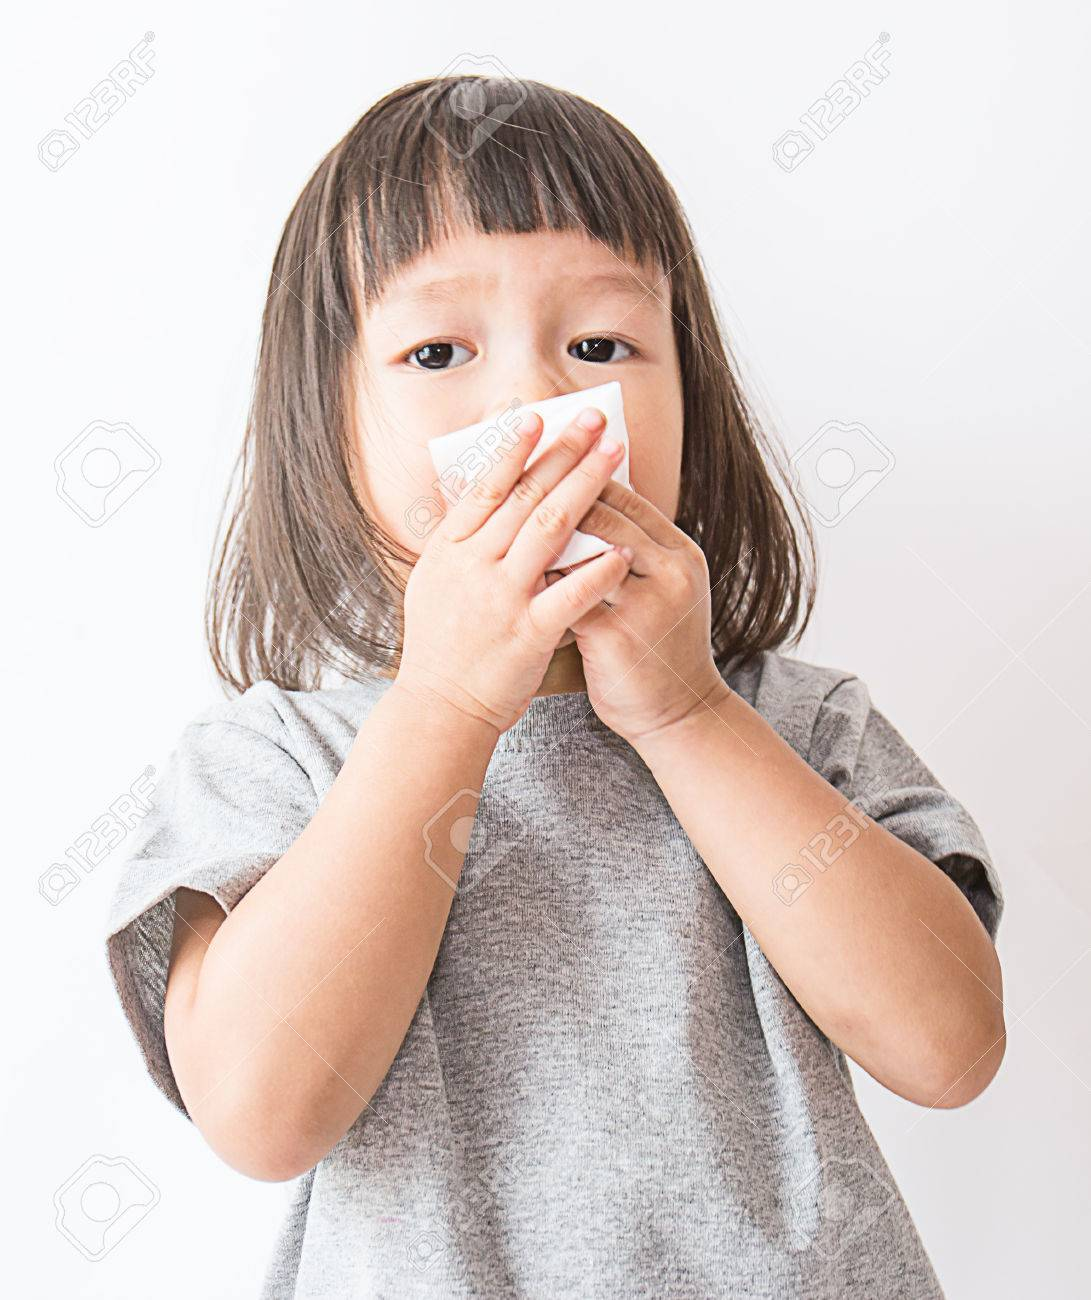 Cute little asian girl blows her nose over white background (asian) - 83058147